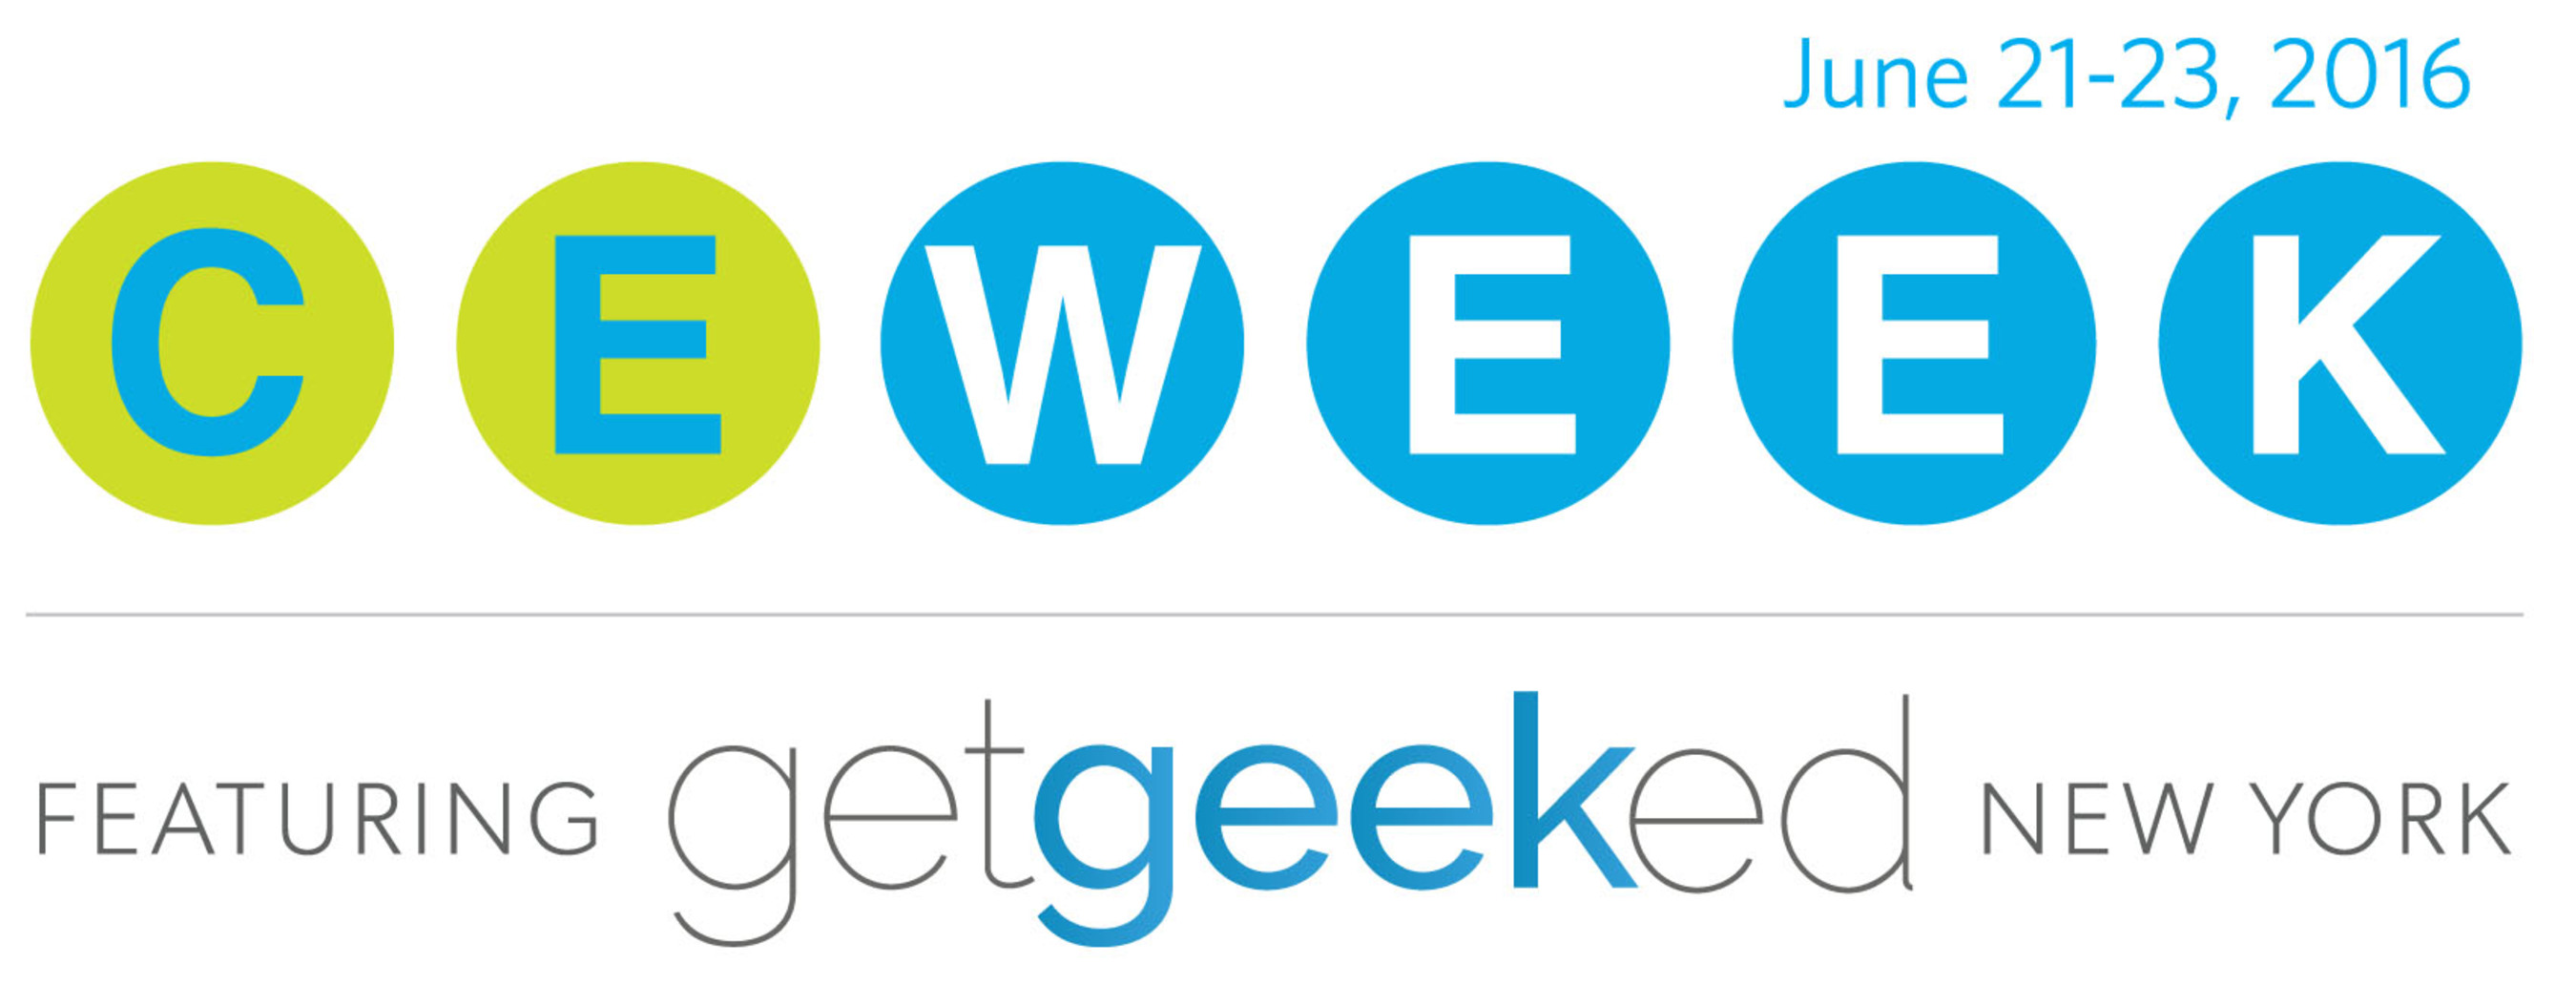 1500 Geeks and Thousands of Tech Industry Leaders and Media Talk Trends and Get Hands-on with the Hottest New Tech Products at CE Week 2016